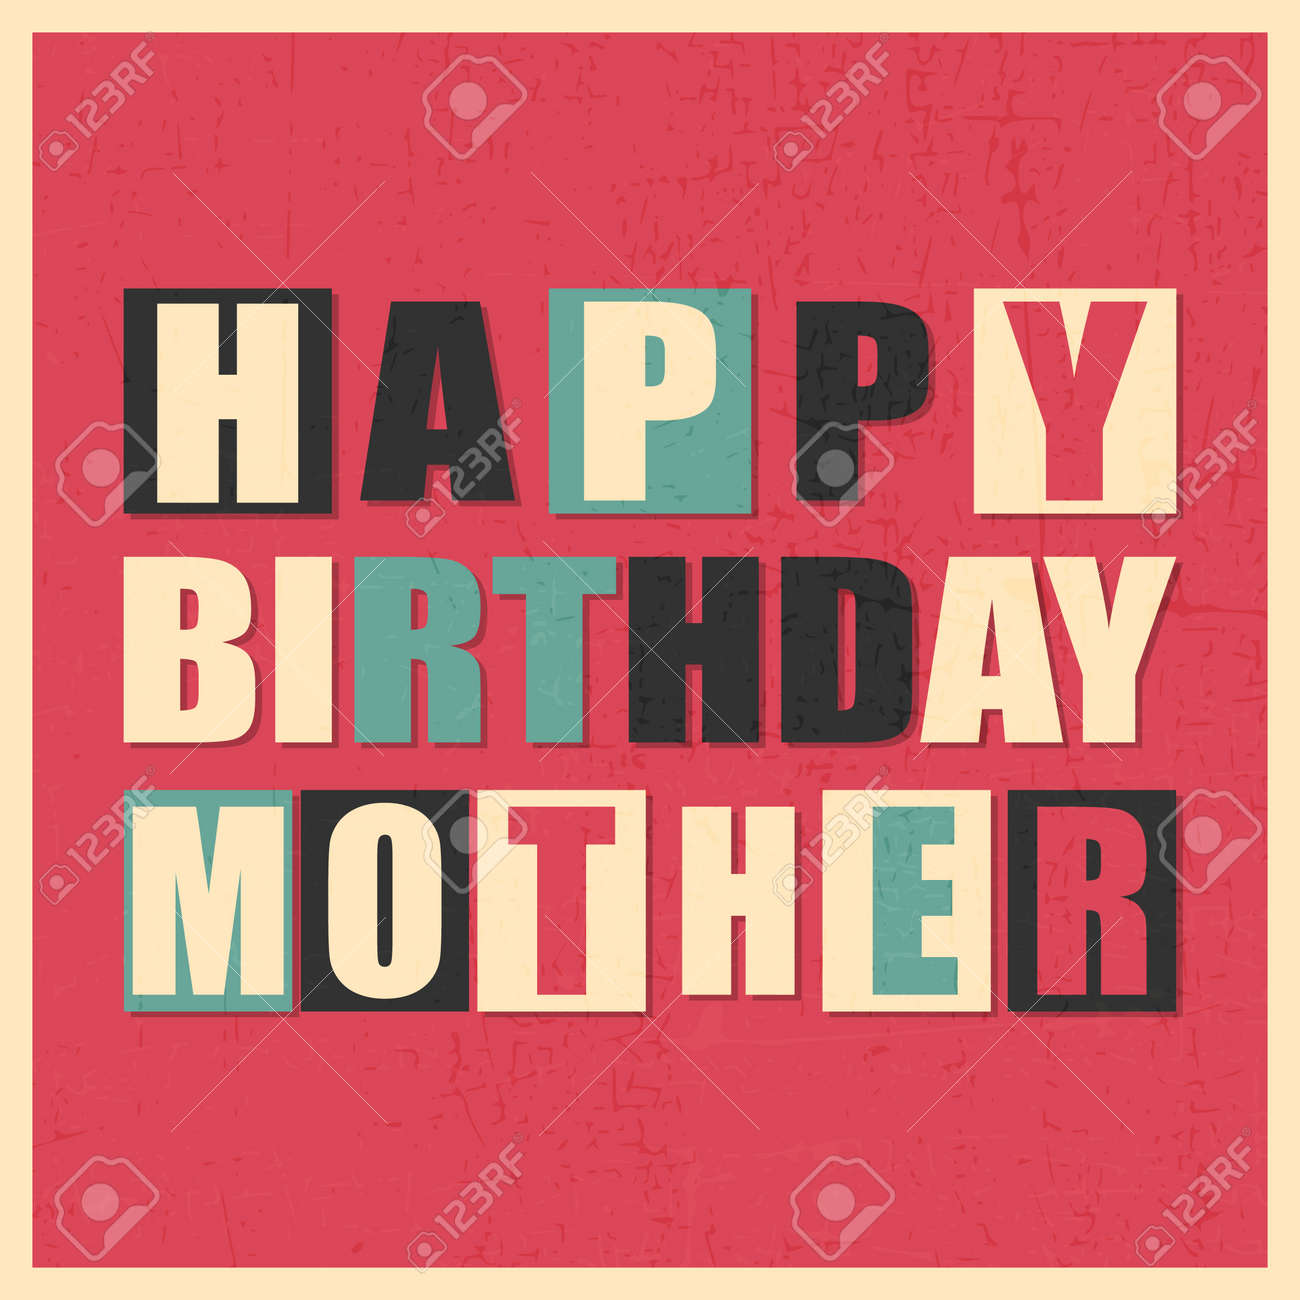 Colorful Greeting Card Happy Birthday Mother On Red Background